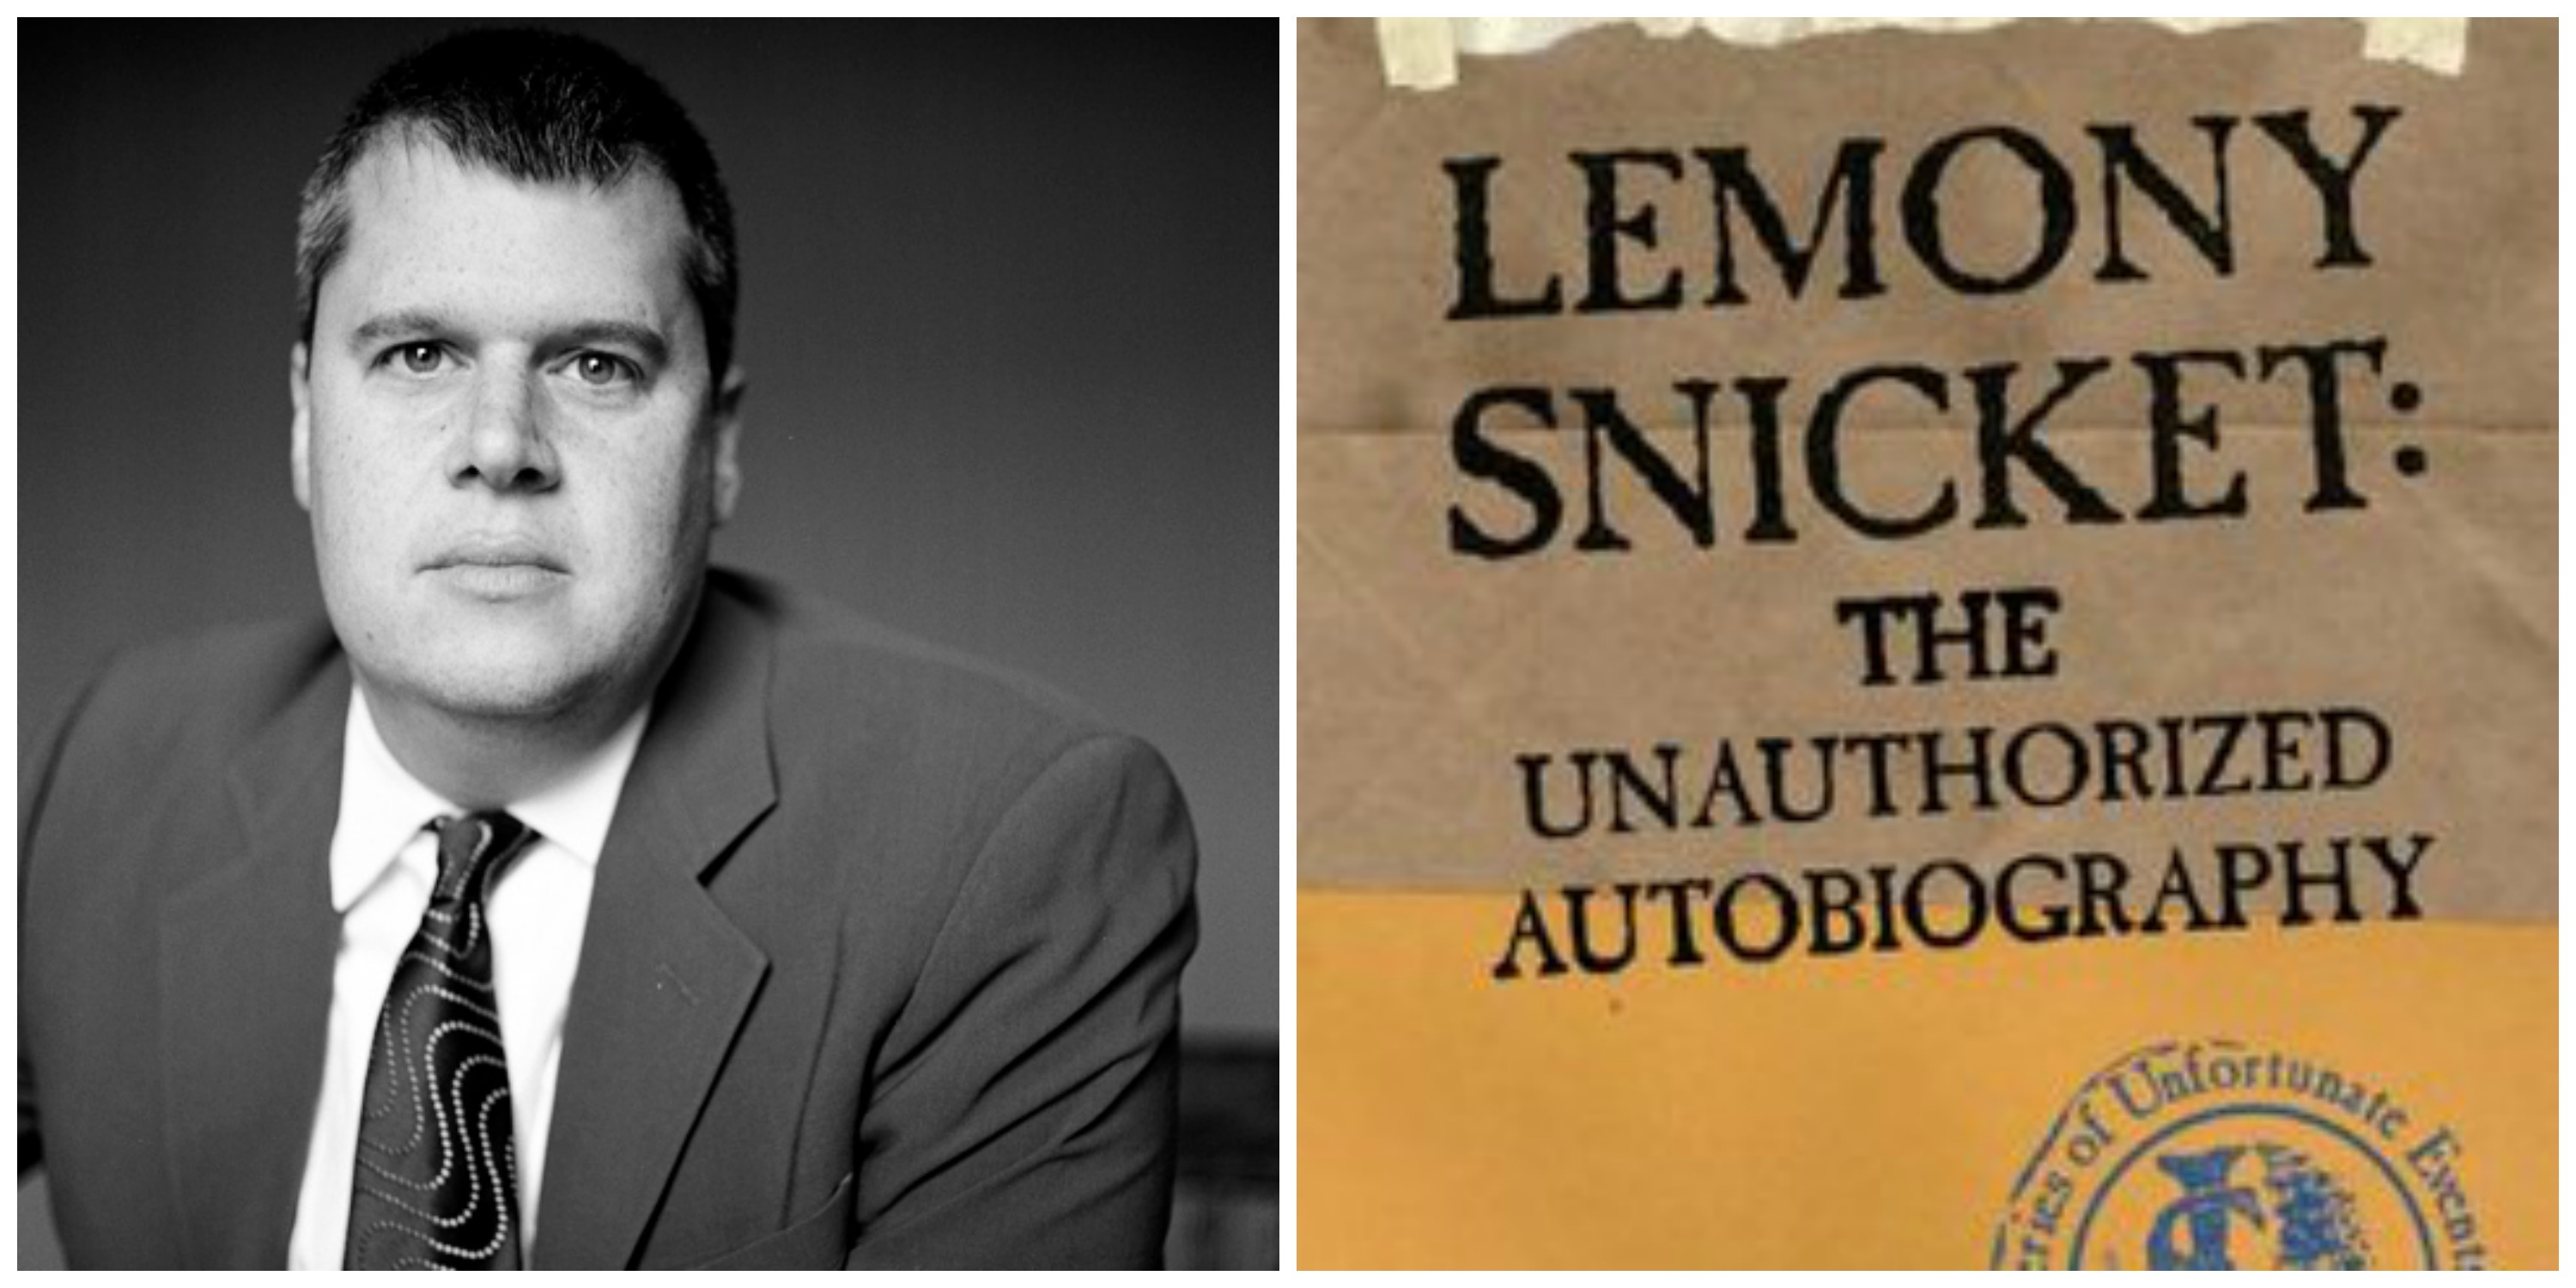 LEFT: Daniel Handler. RIGHT: A companion book to 'A Series of Unfortunate Events': Snicket's faux-autobiography.